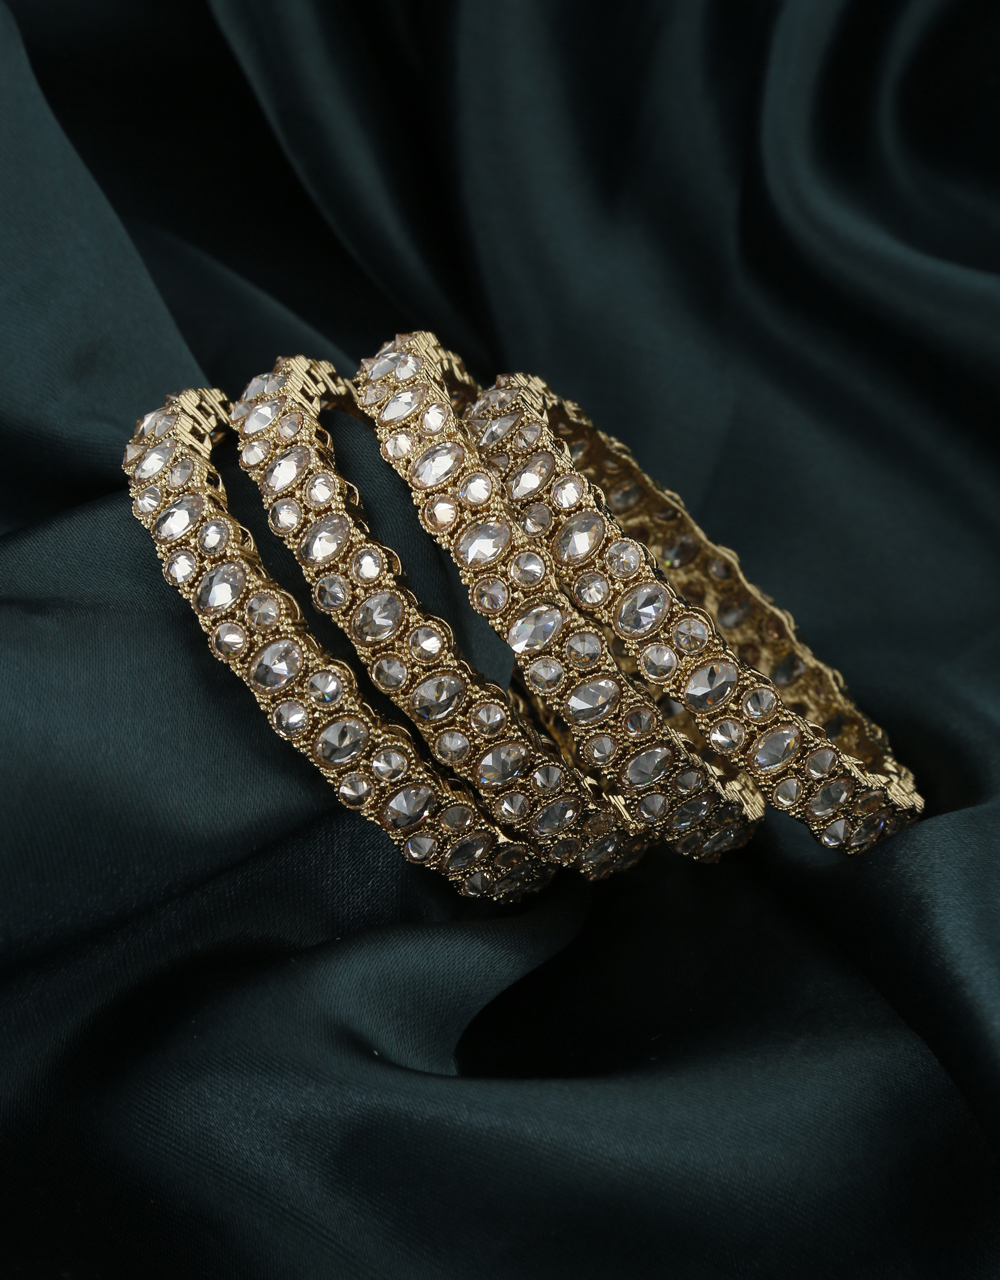 Shining Bangle Studded With LCT Stone Completely Decorated For Women